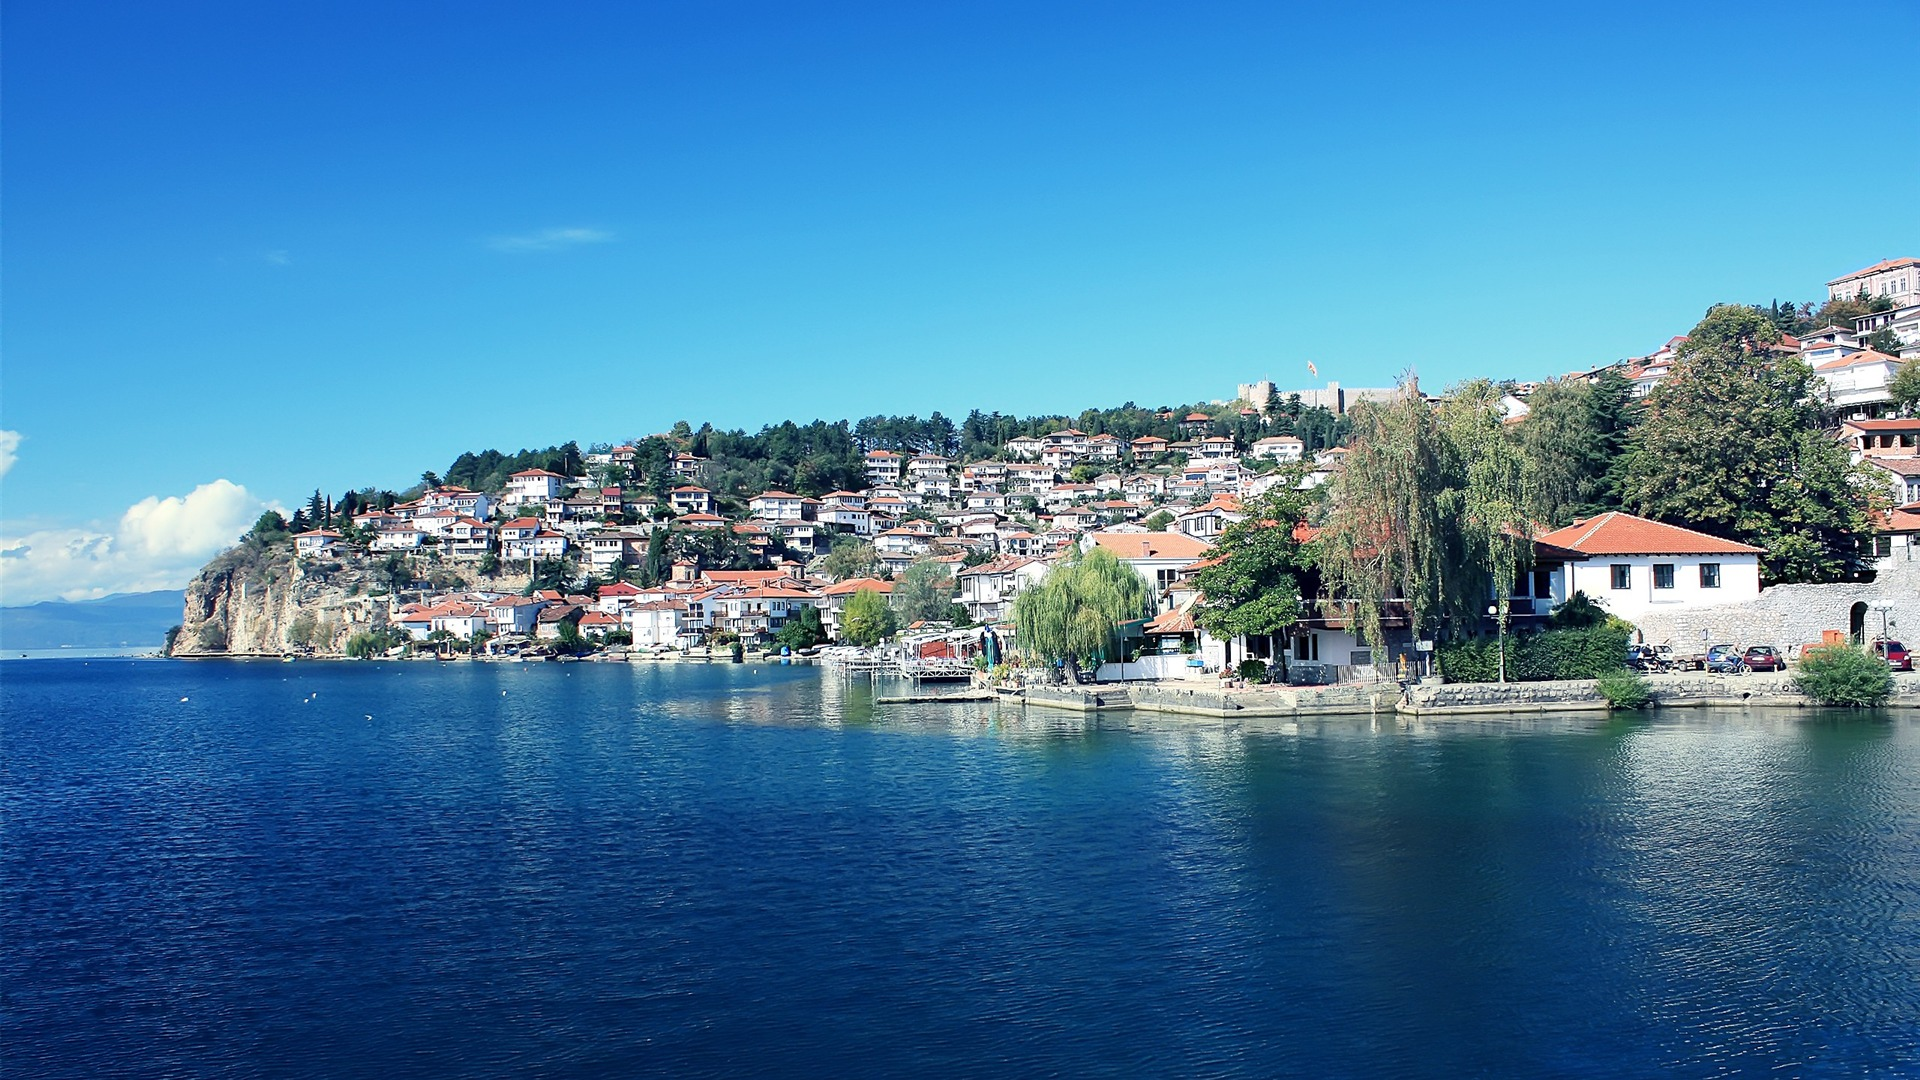 The Macedonian Ohrid The Old Town Small Fresh Landscape